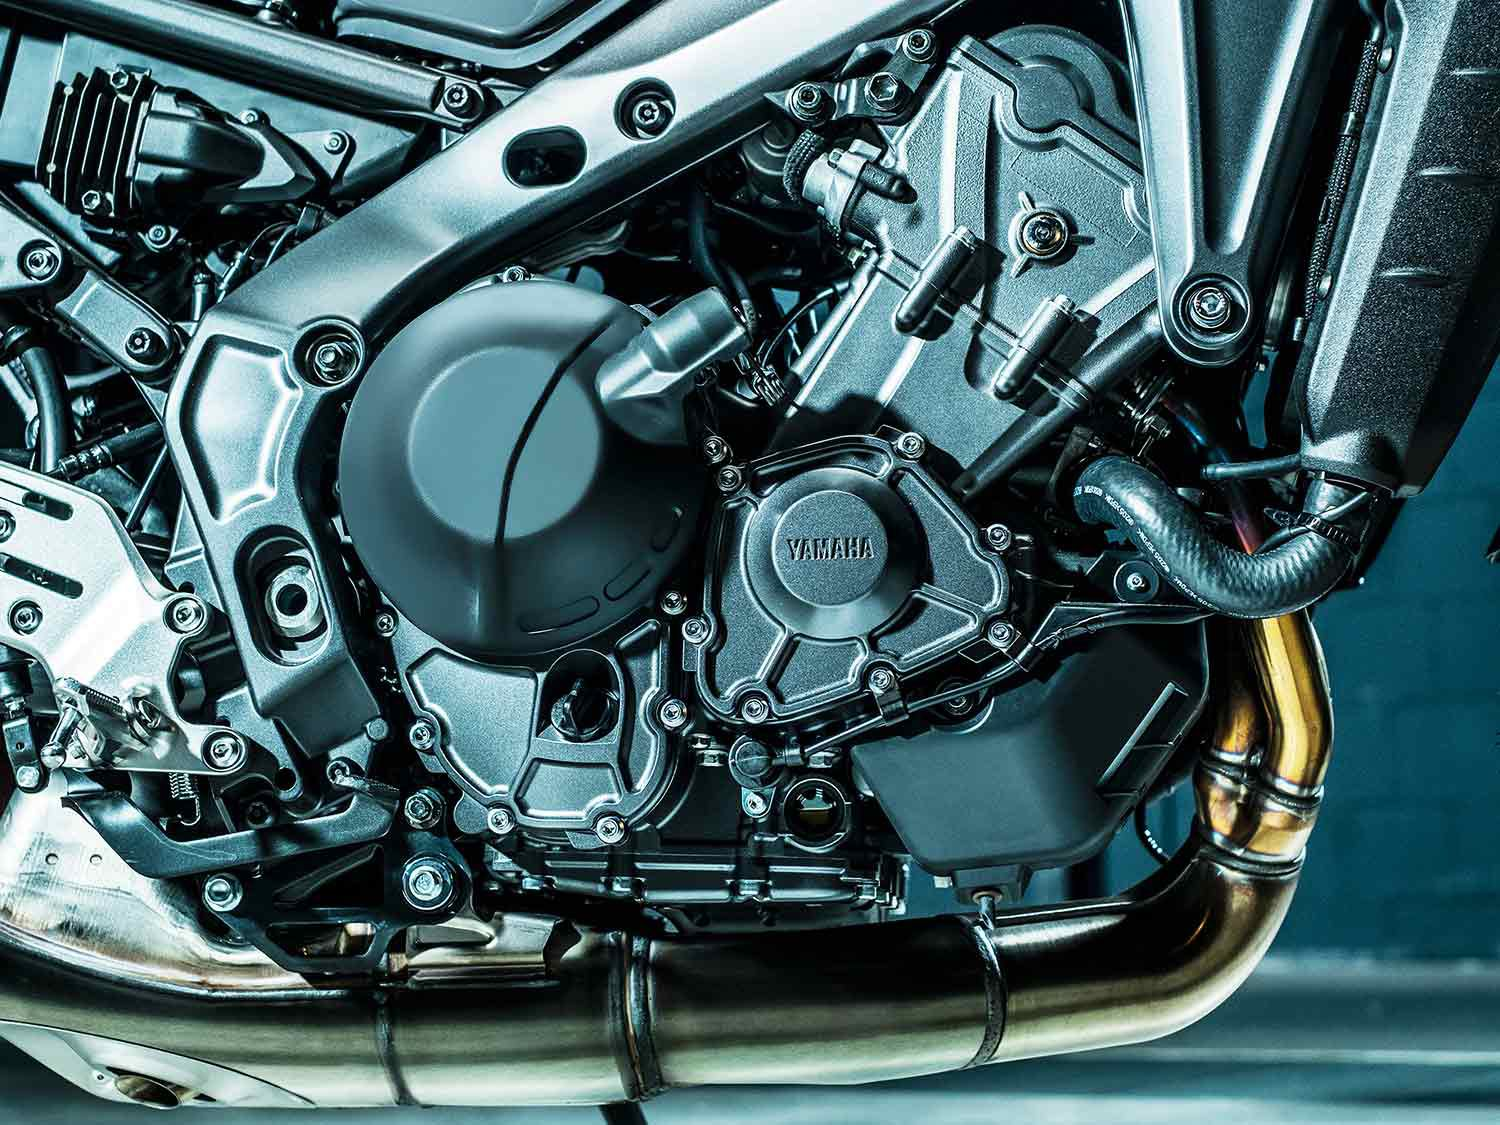 Yamaha gives you more engine, with a brand-new 890cc crossplane-crank triple.